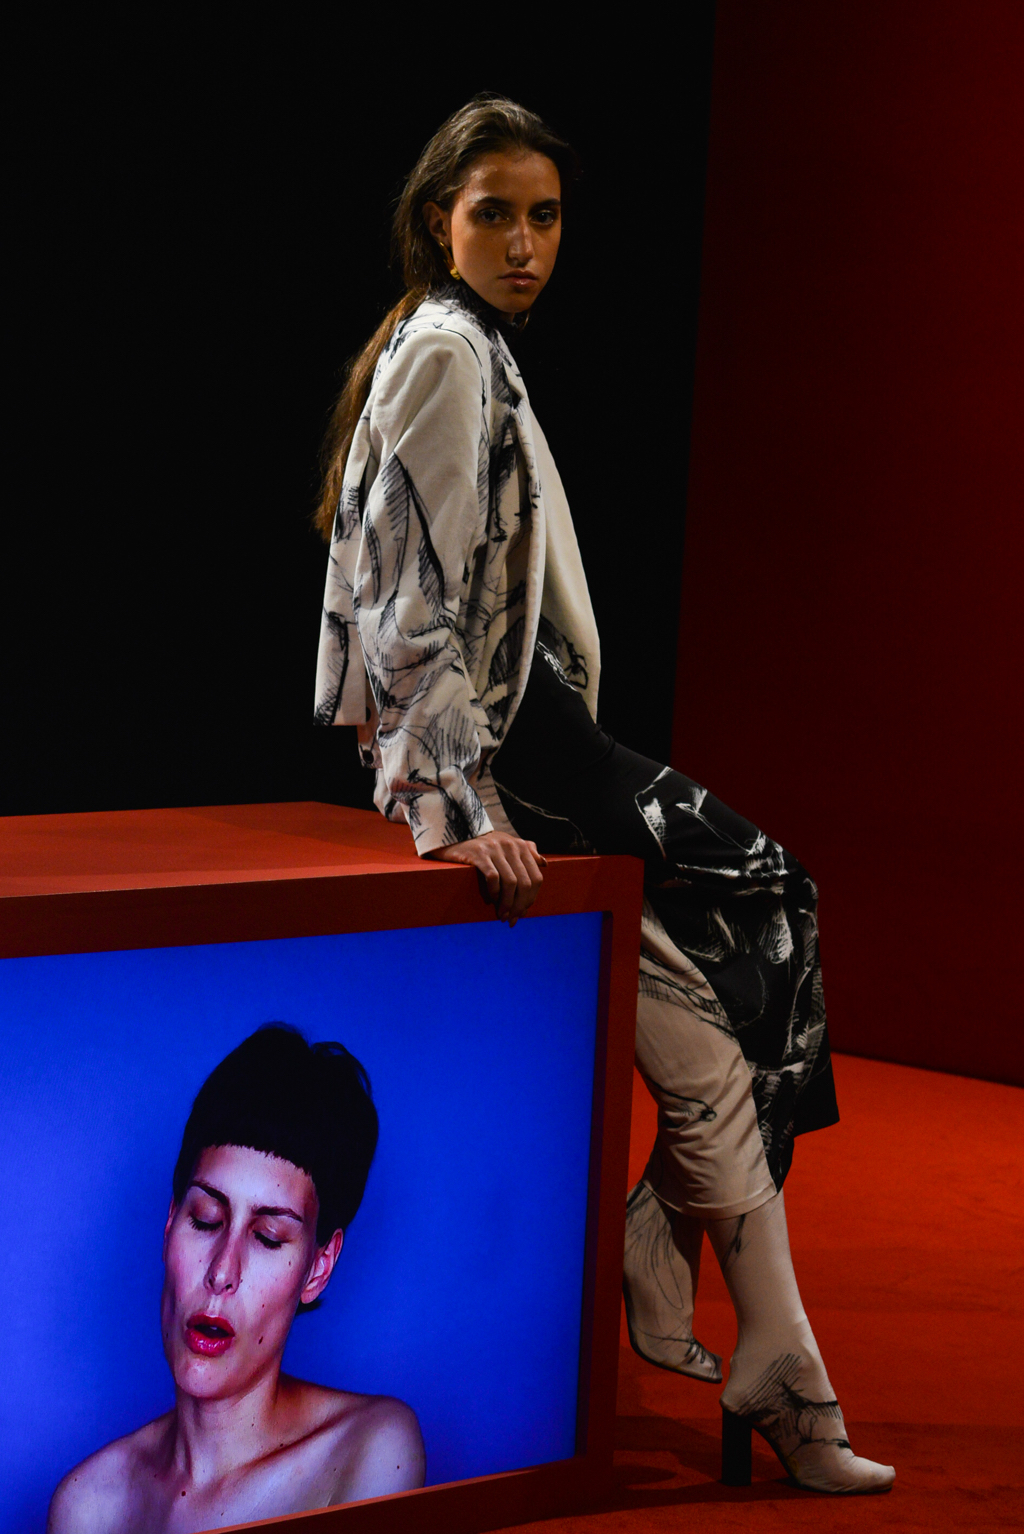 lfw-ss17-paula-knorr-krish-nagari-the-upcoming-7